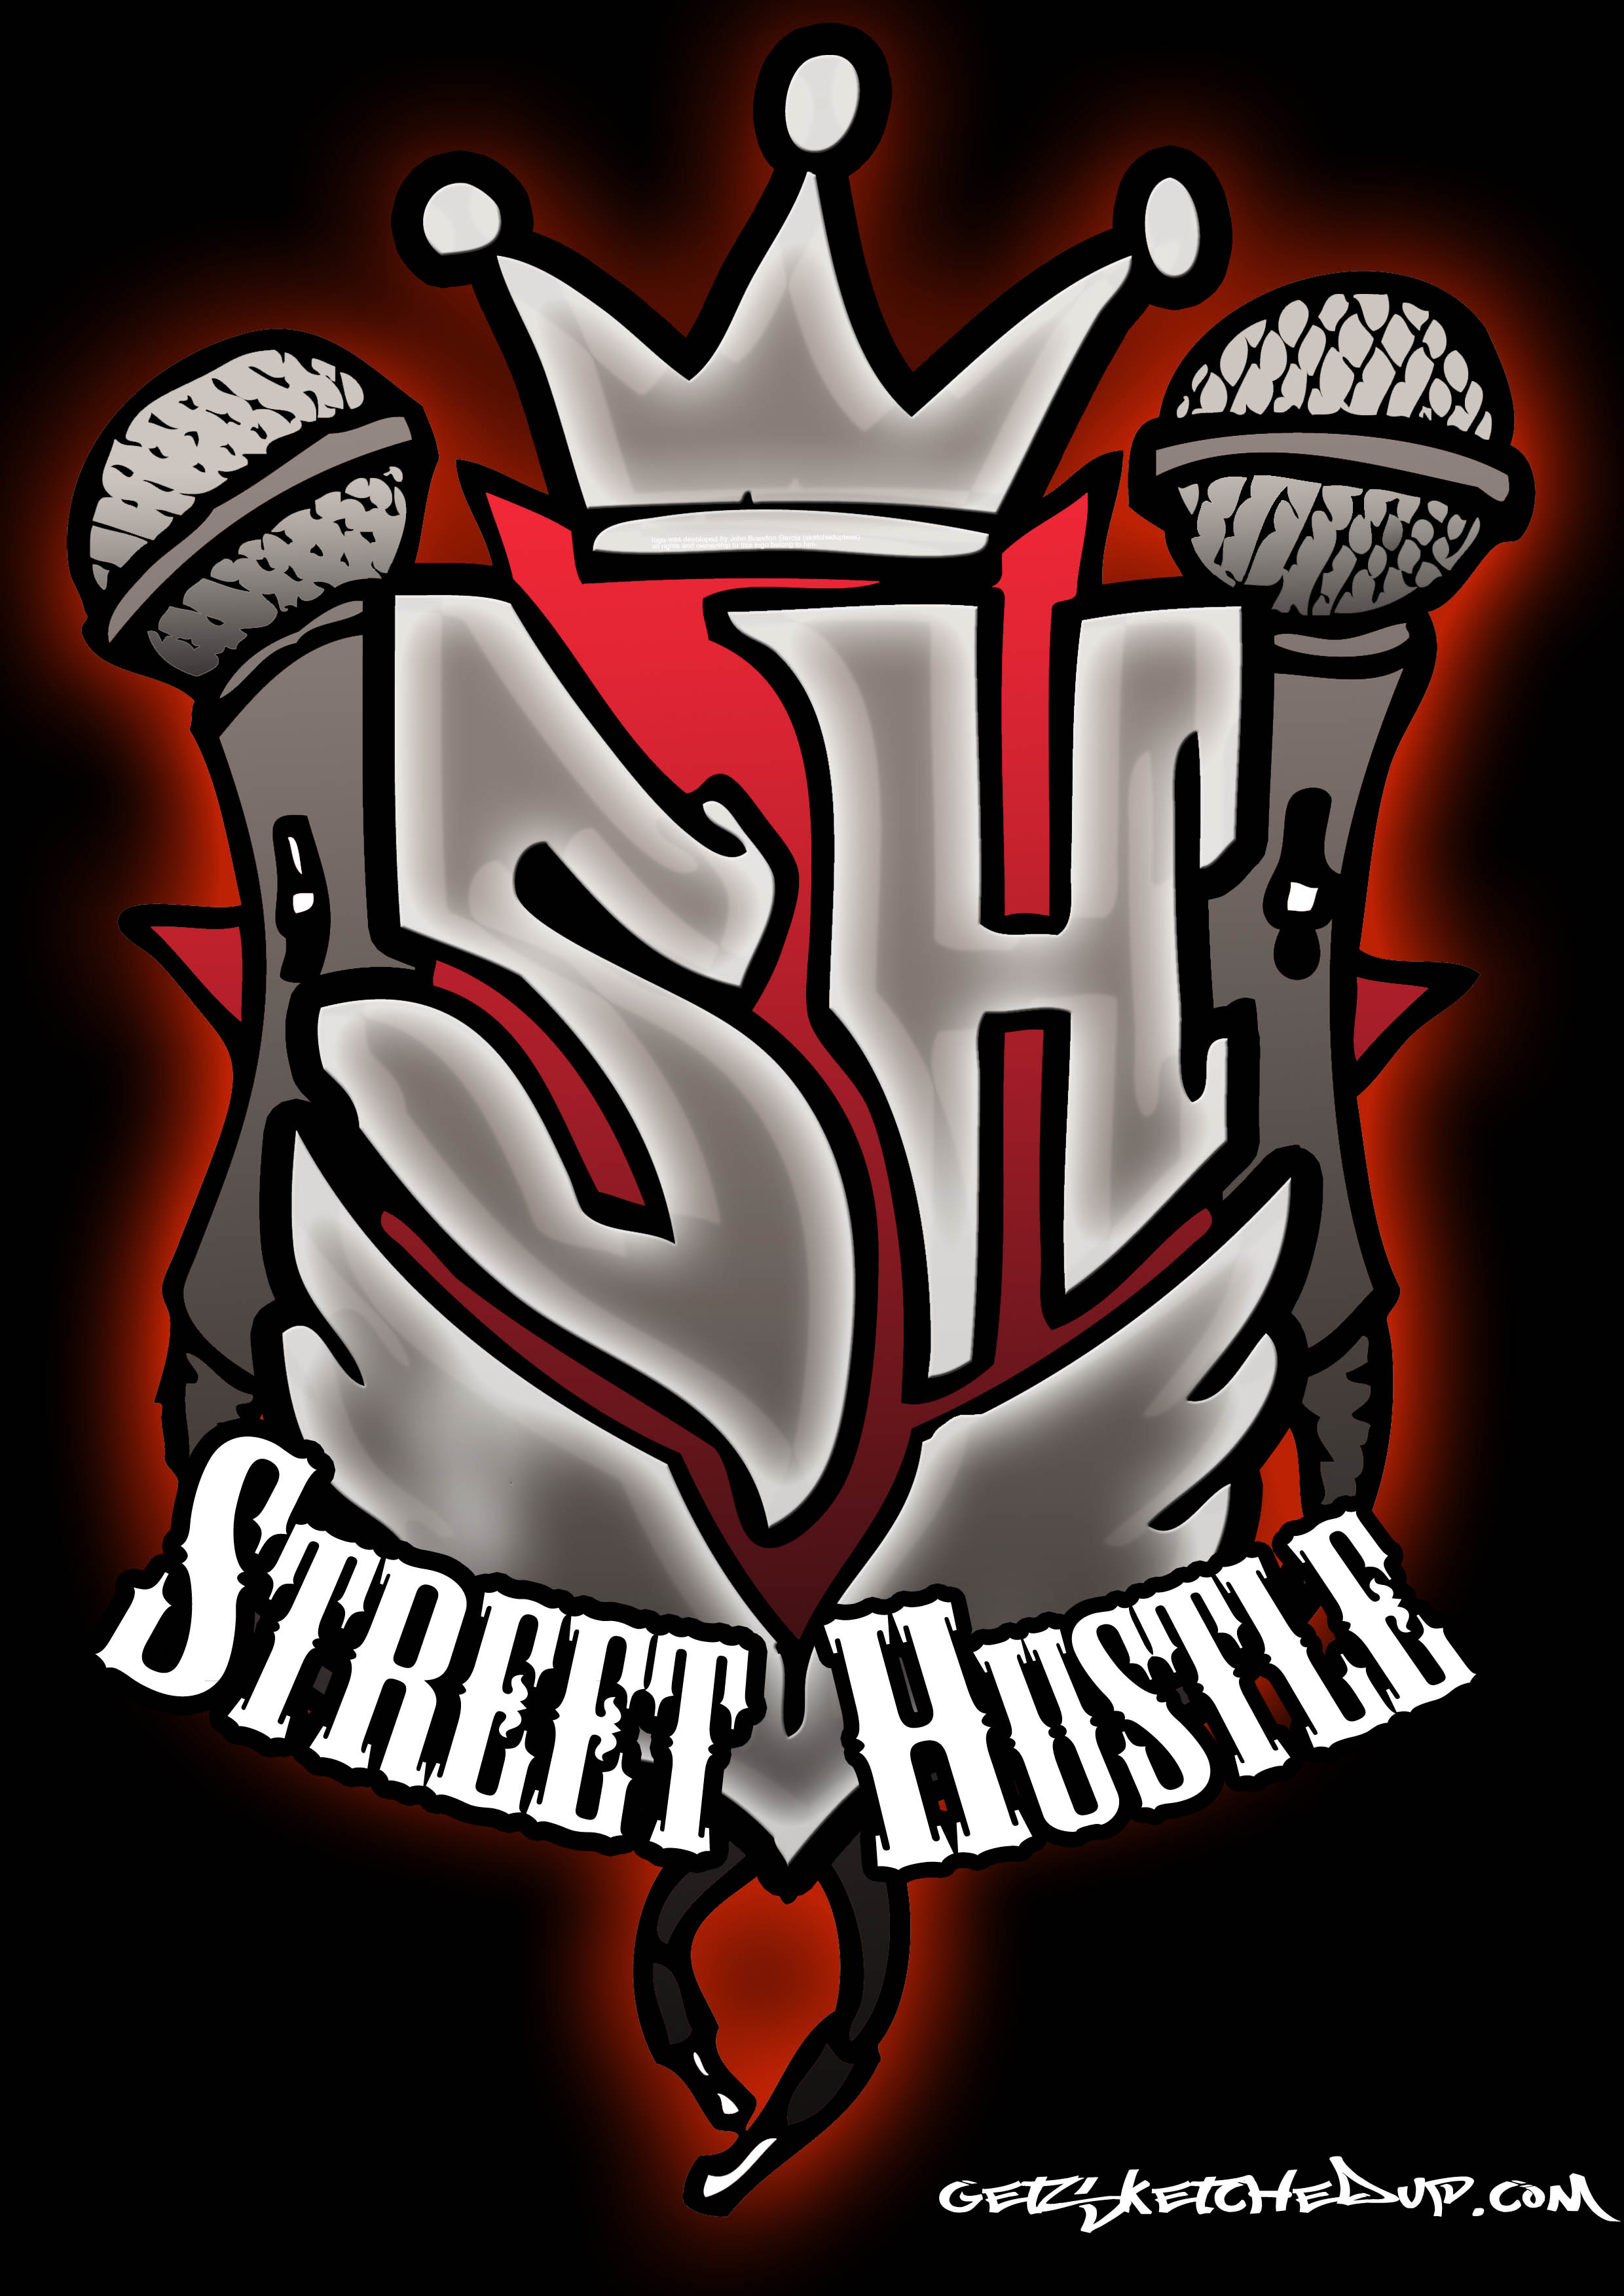 The team representative street hustle and coming rap group